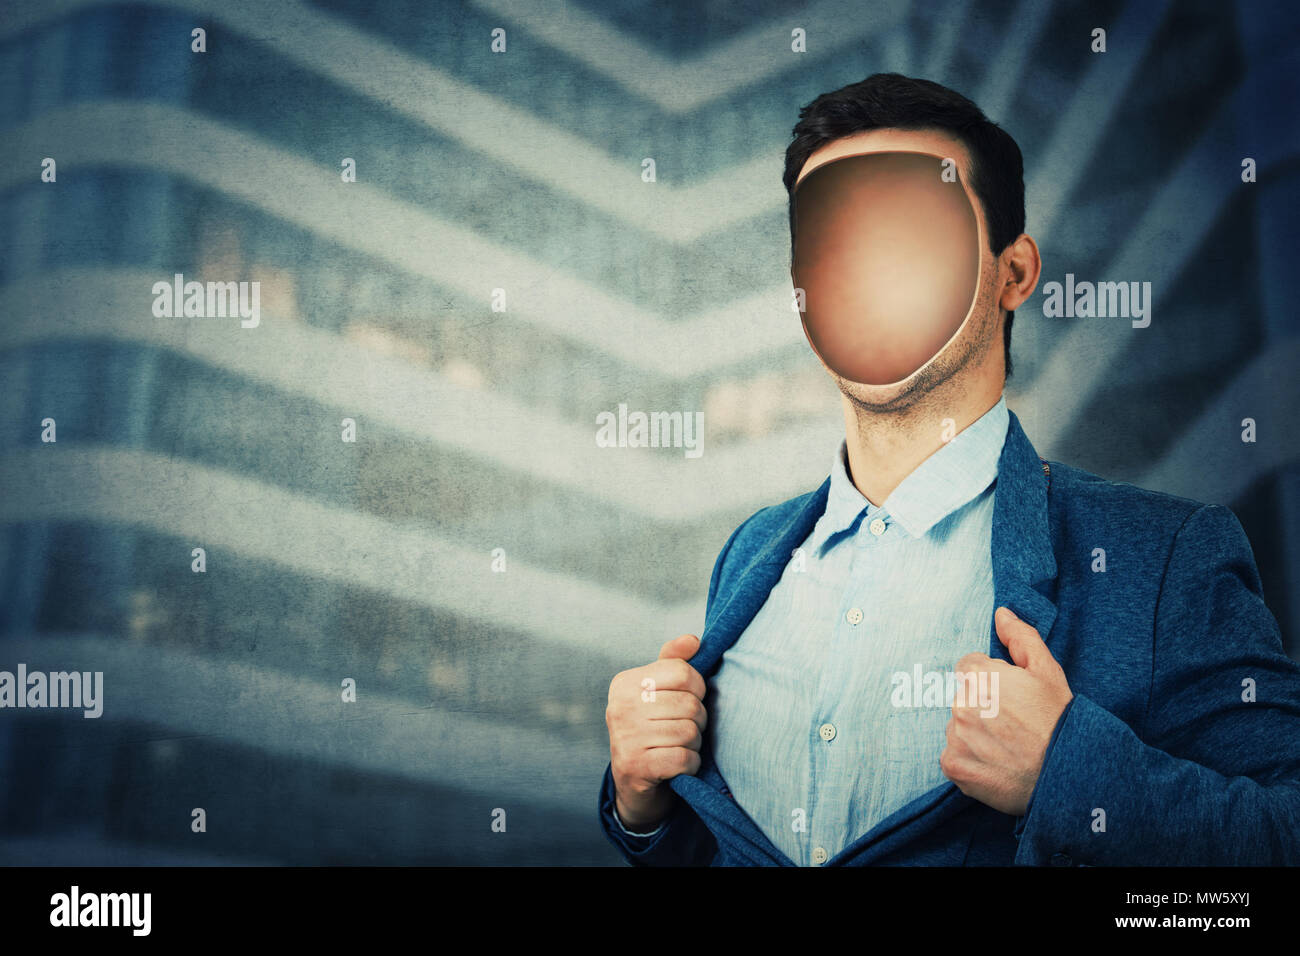 Faceless businessman with a empty hole in his head instead face. Vacuum inside human head. Fantasy futuristic background, incognito open minded man sy - Stock Image